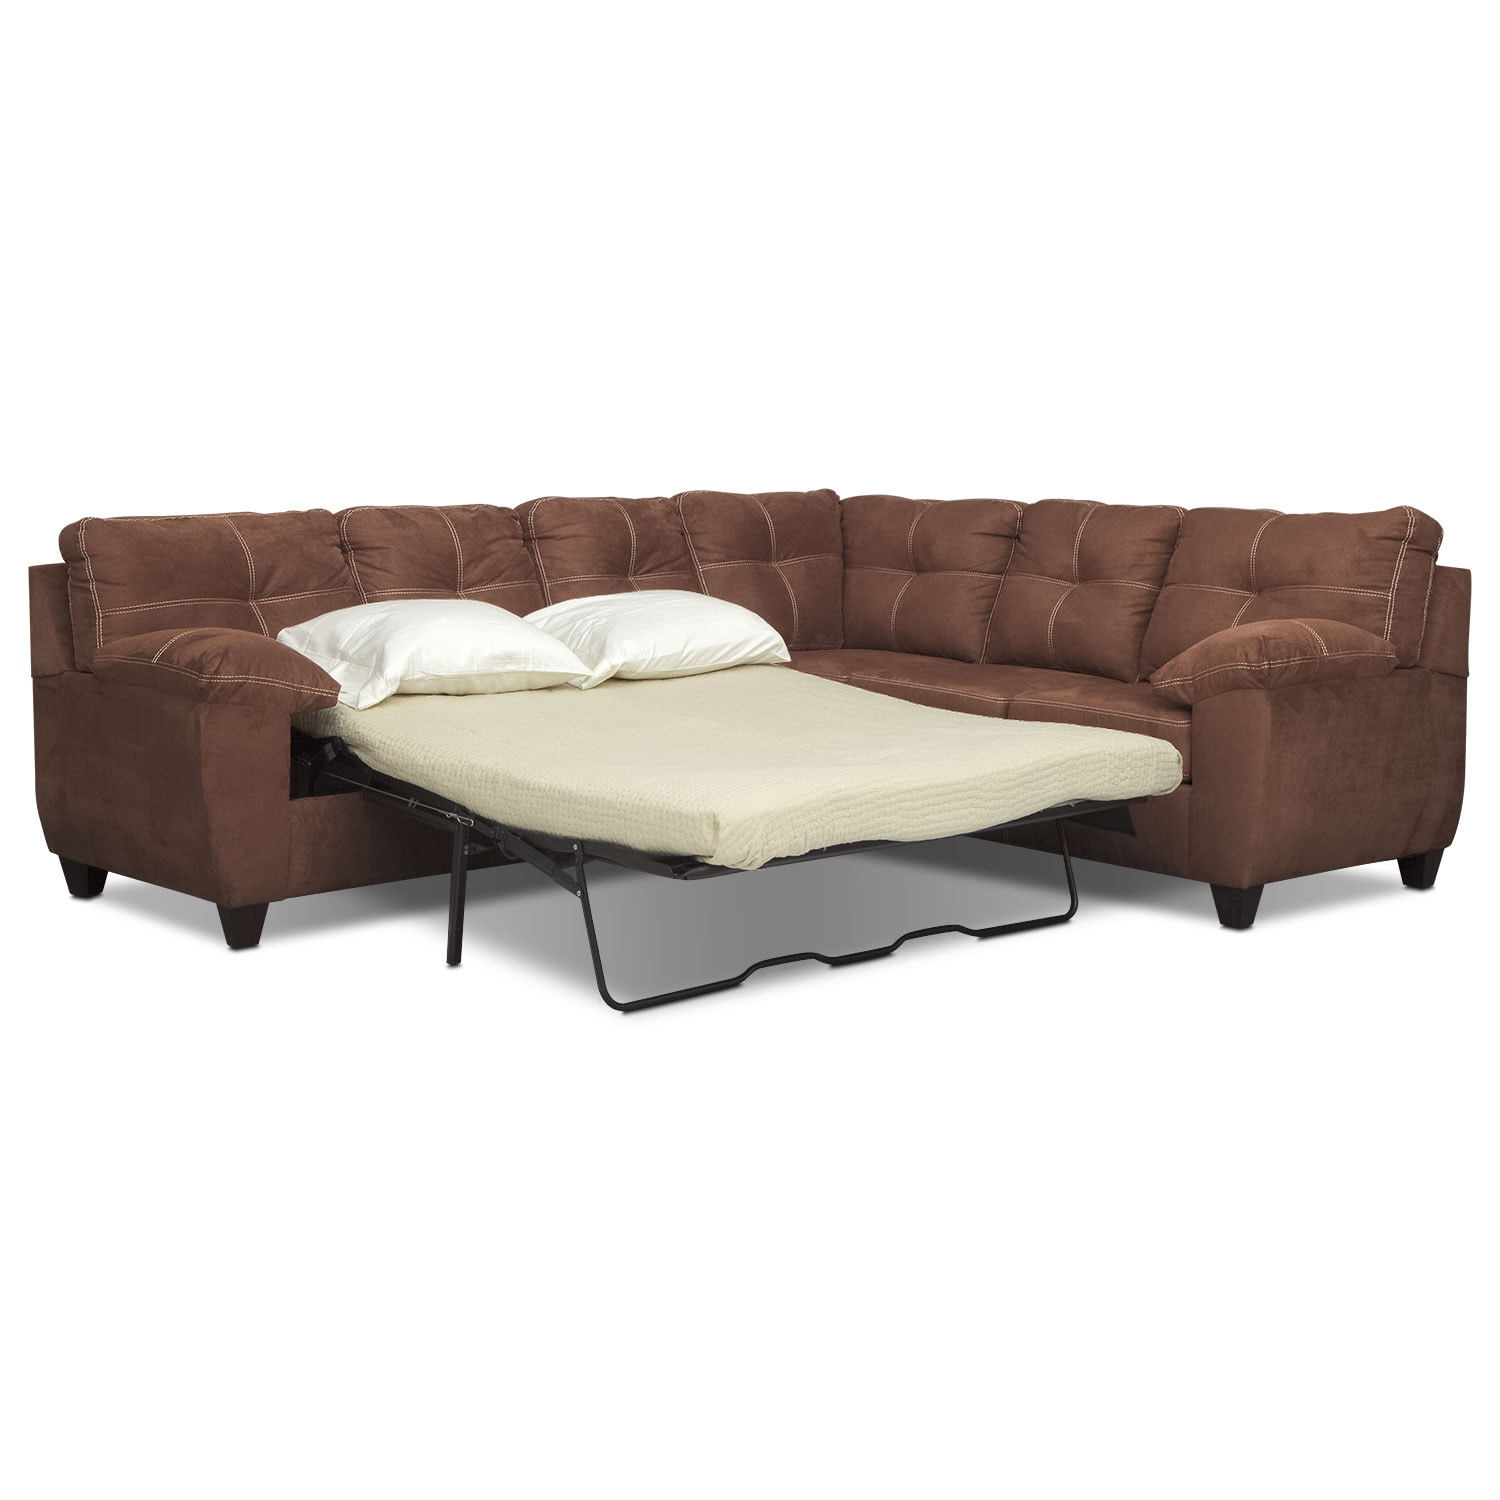 back of sofa facing fireplace loveseat sleeper target ricardo 2 piece innerspring sectional with right